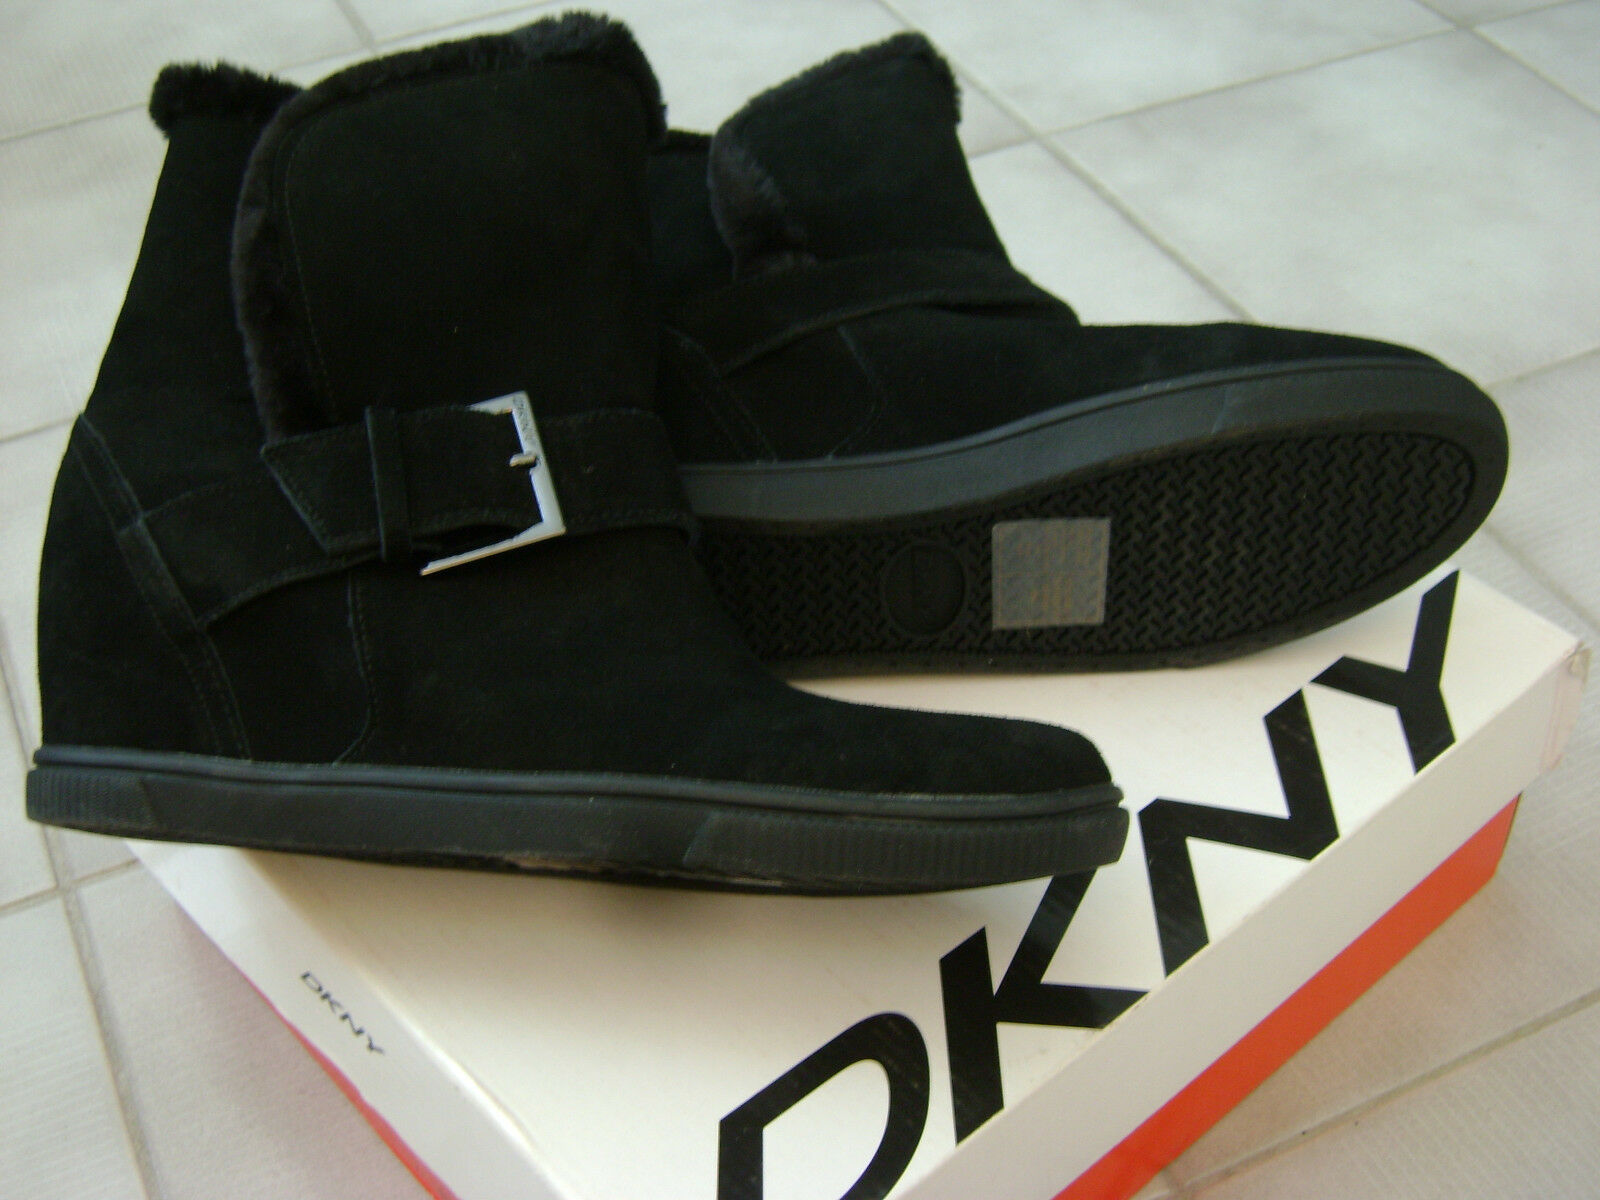 DKNY Donna Karan Sara Sport Suede Leather Wedge Ankle Boots - Size 9.5 B